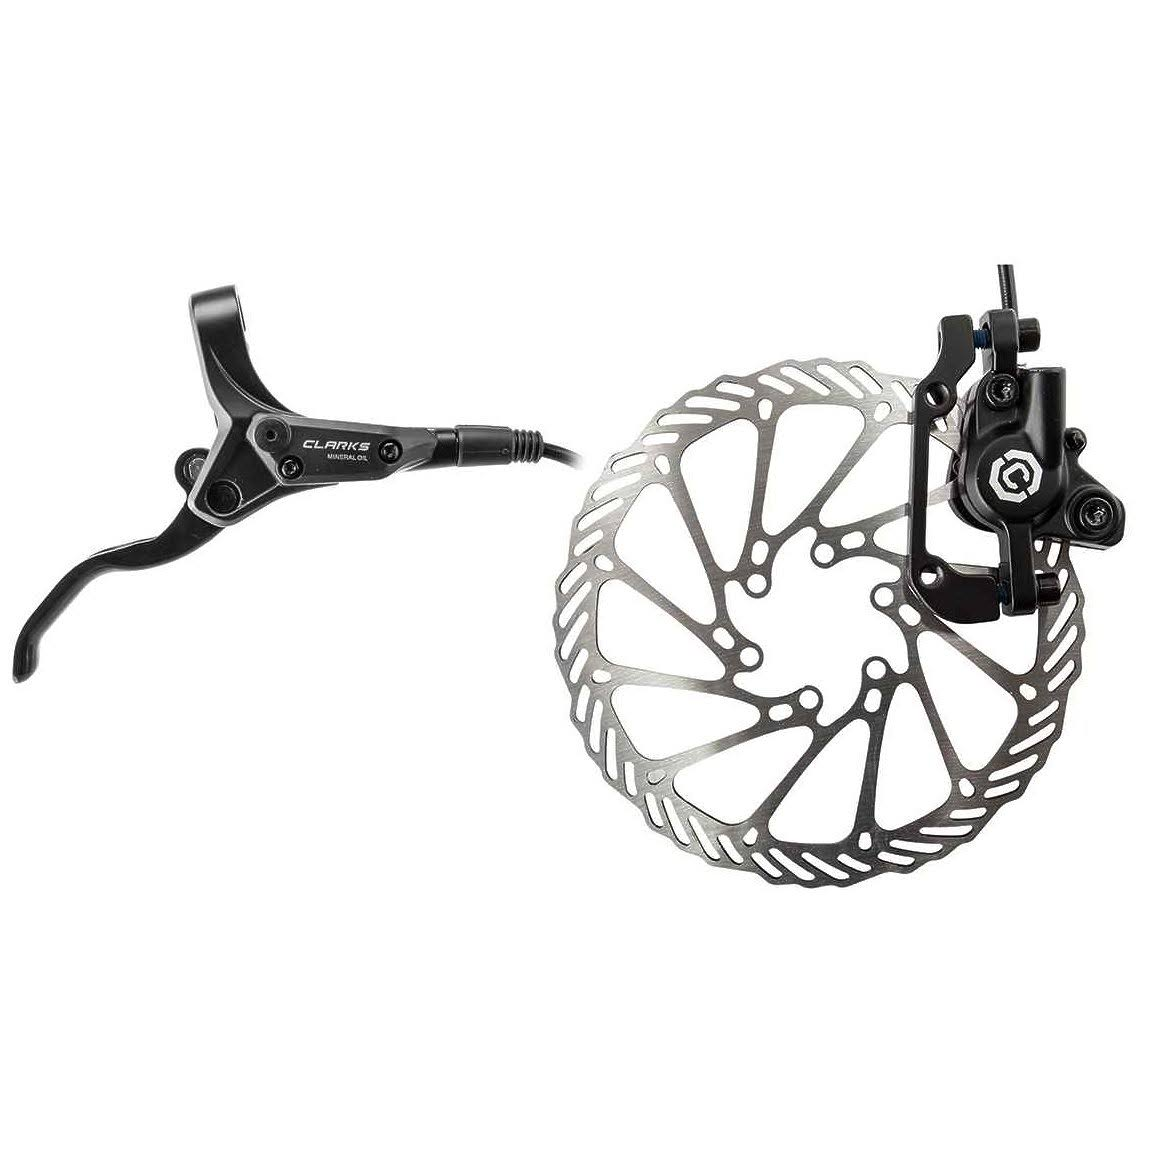 Clarks M1 Hydraulic Brake Pair - 160mm, Black